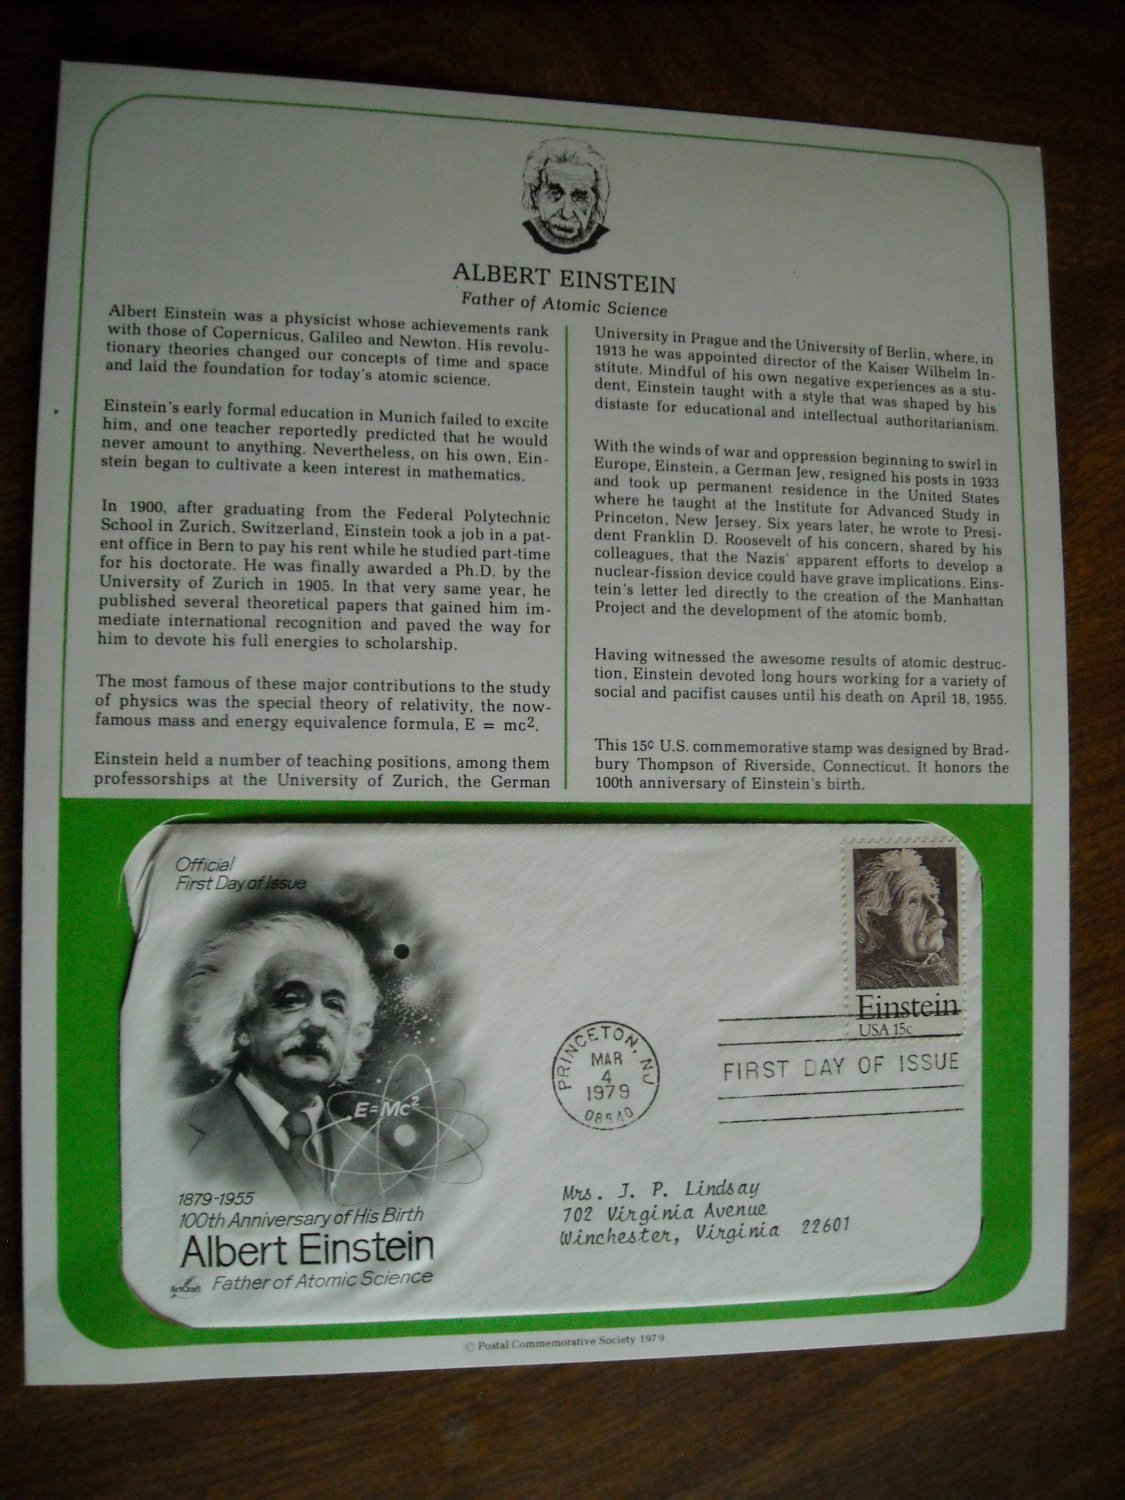 albert einstein childhood essay Albert einstein was born on march 14, 1879 in ulm, germany he was a german-born theoretical physicist, which is a part of physics that employs a system using mathematical concepts and languages.